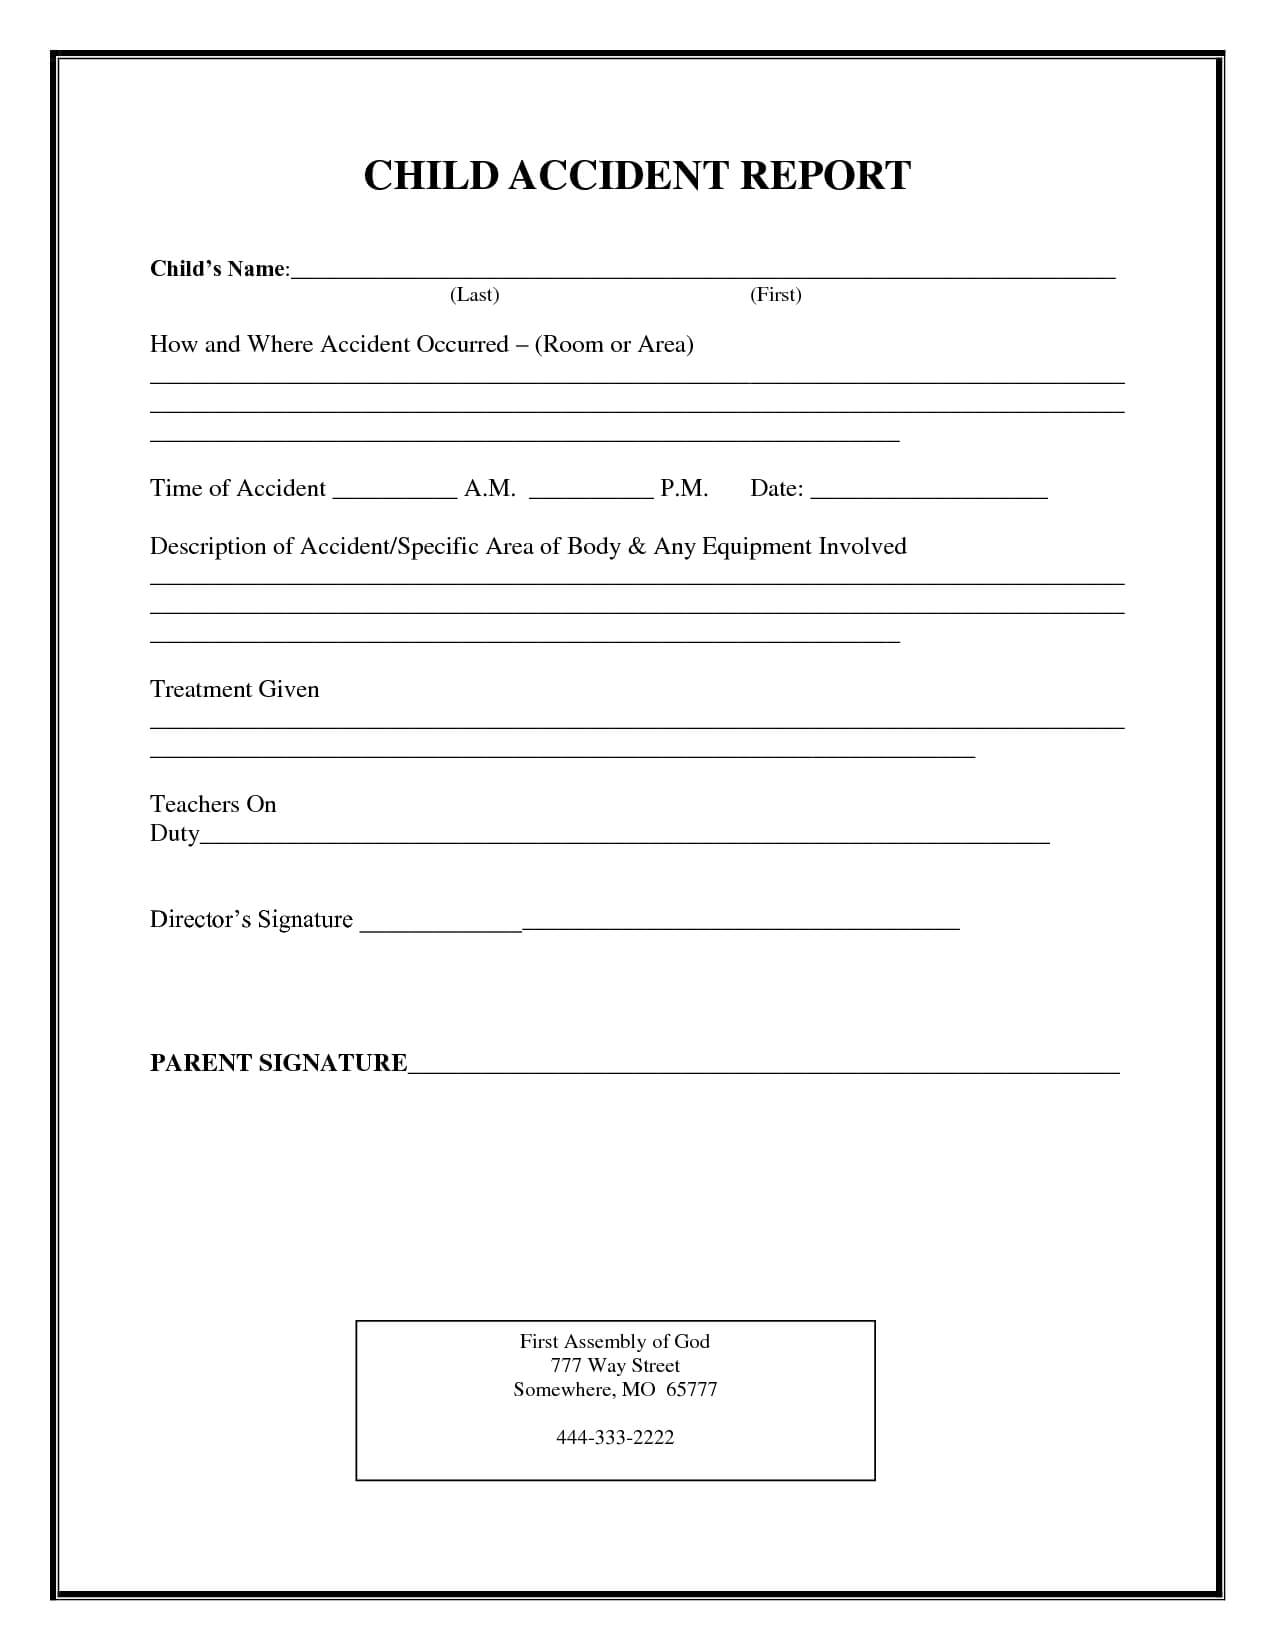 Incident Report Form Child Care | Child Accident Report Throughout Incident Report Form Template Qld